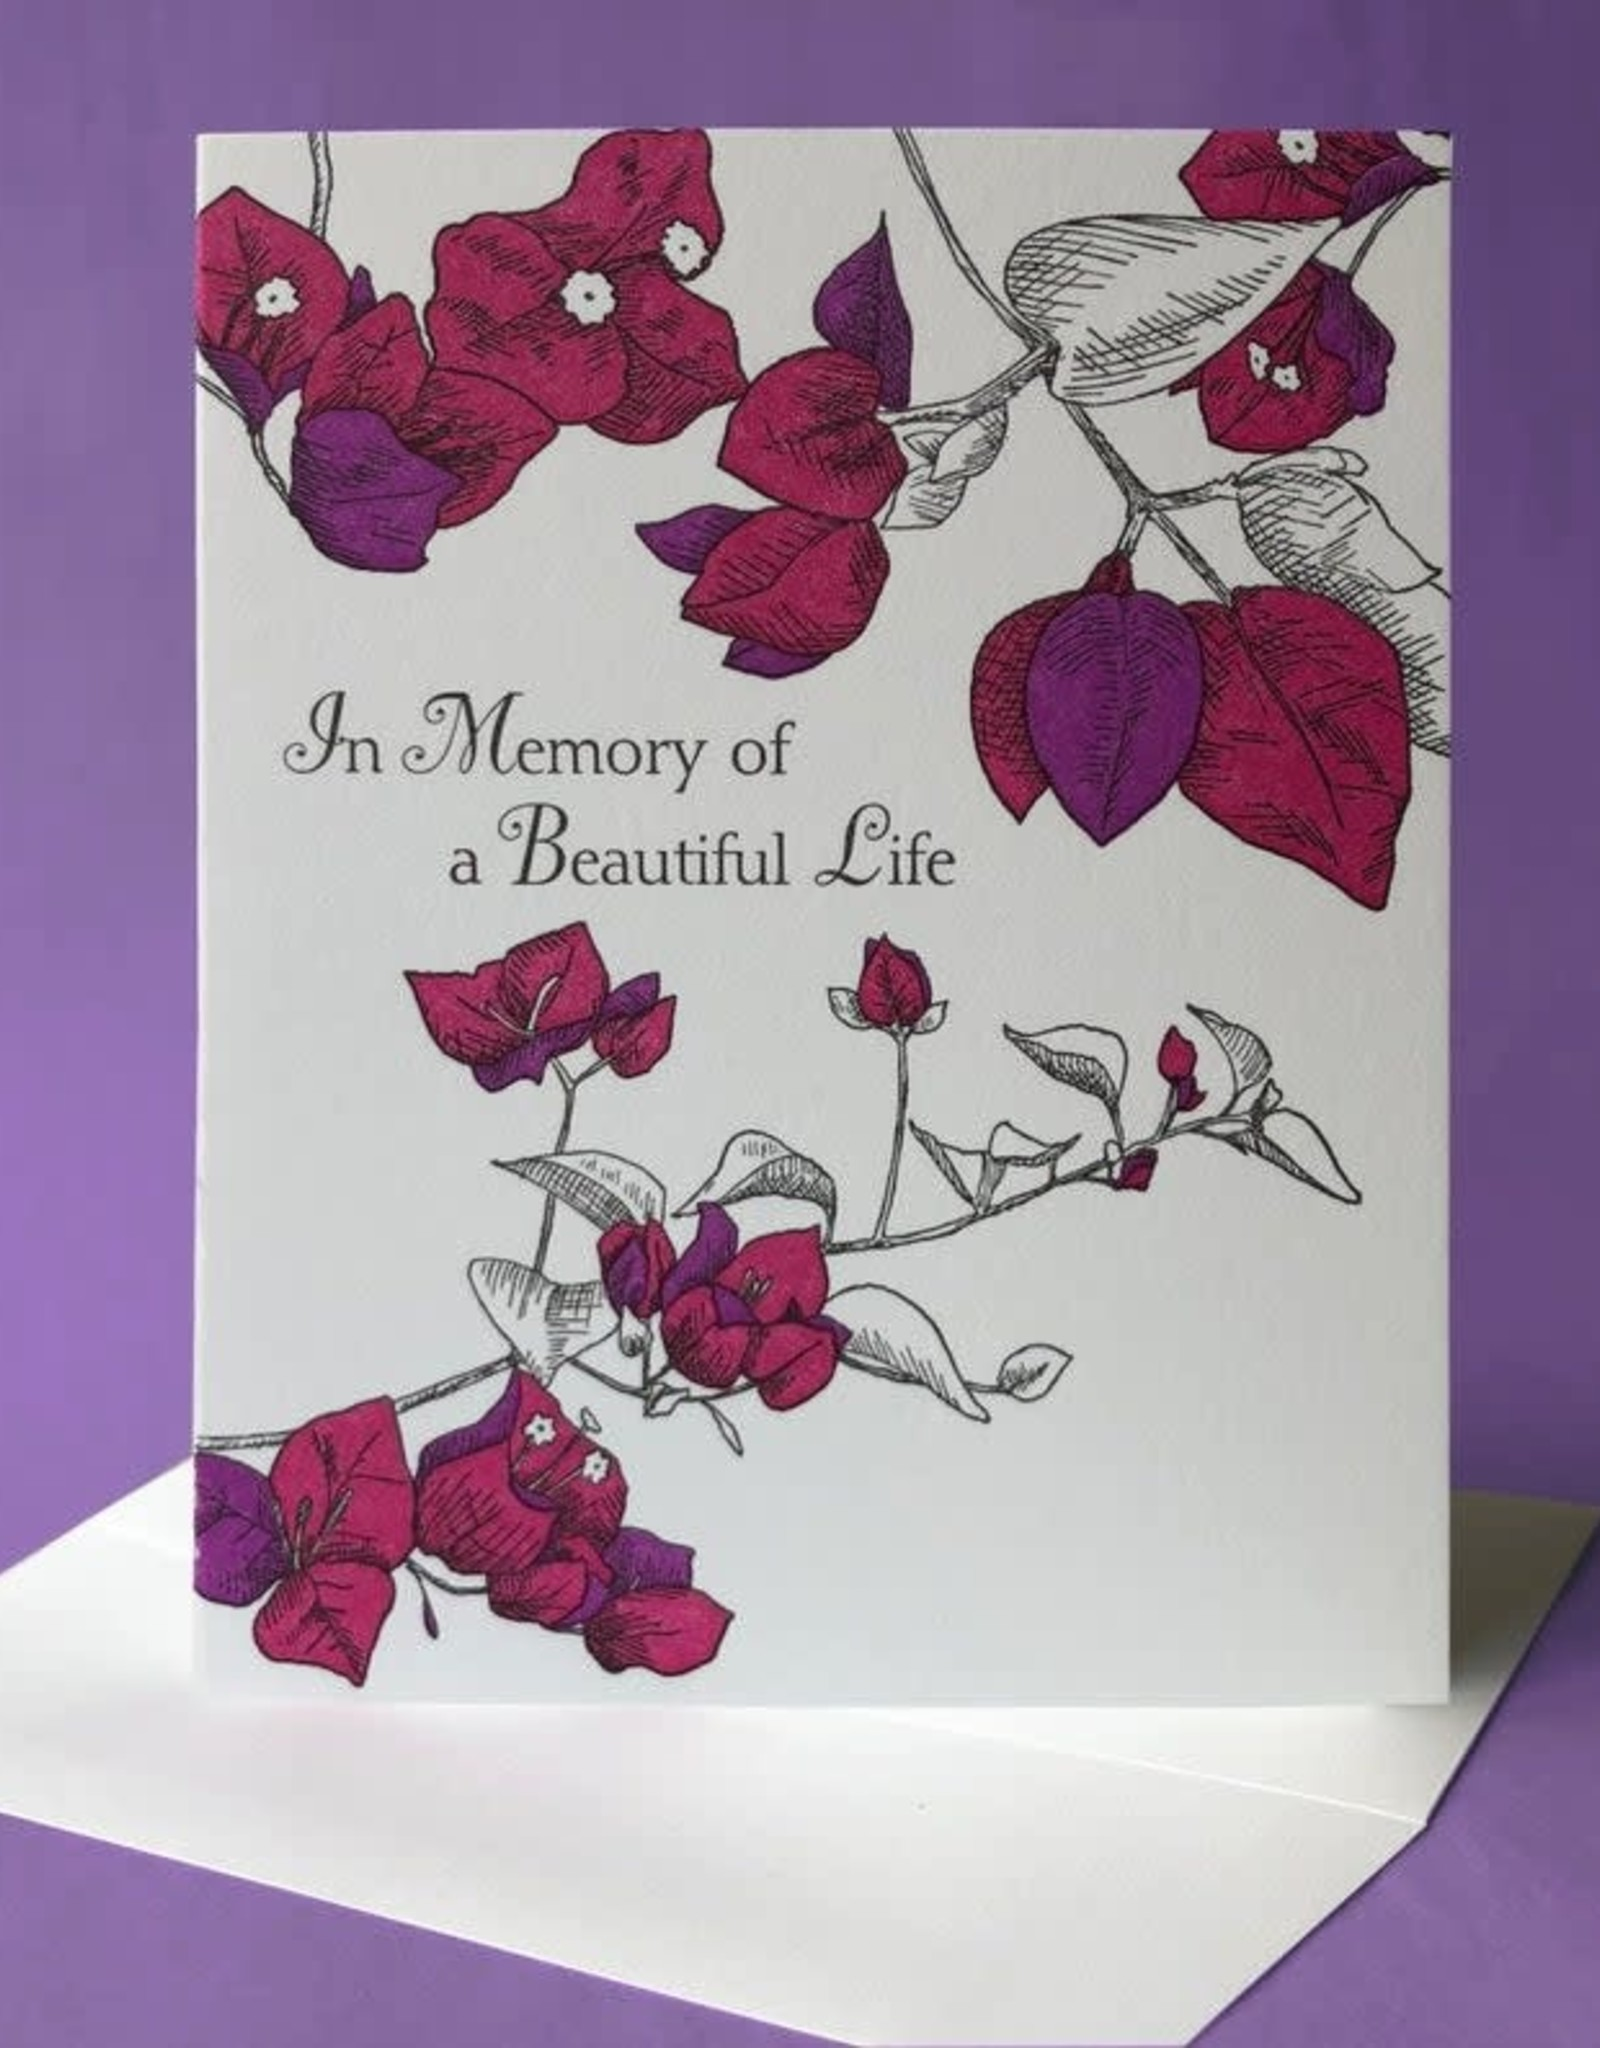 In Memory of a Beautiful Life (Bougainvillea) Greeting Card